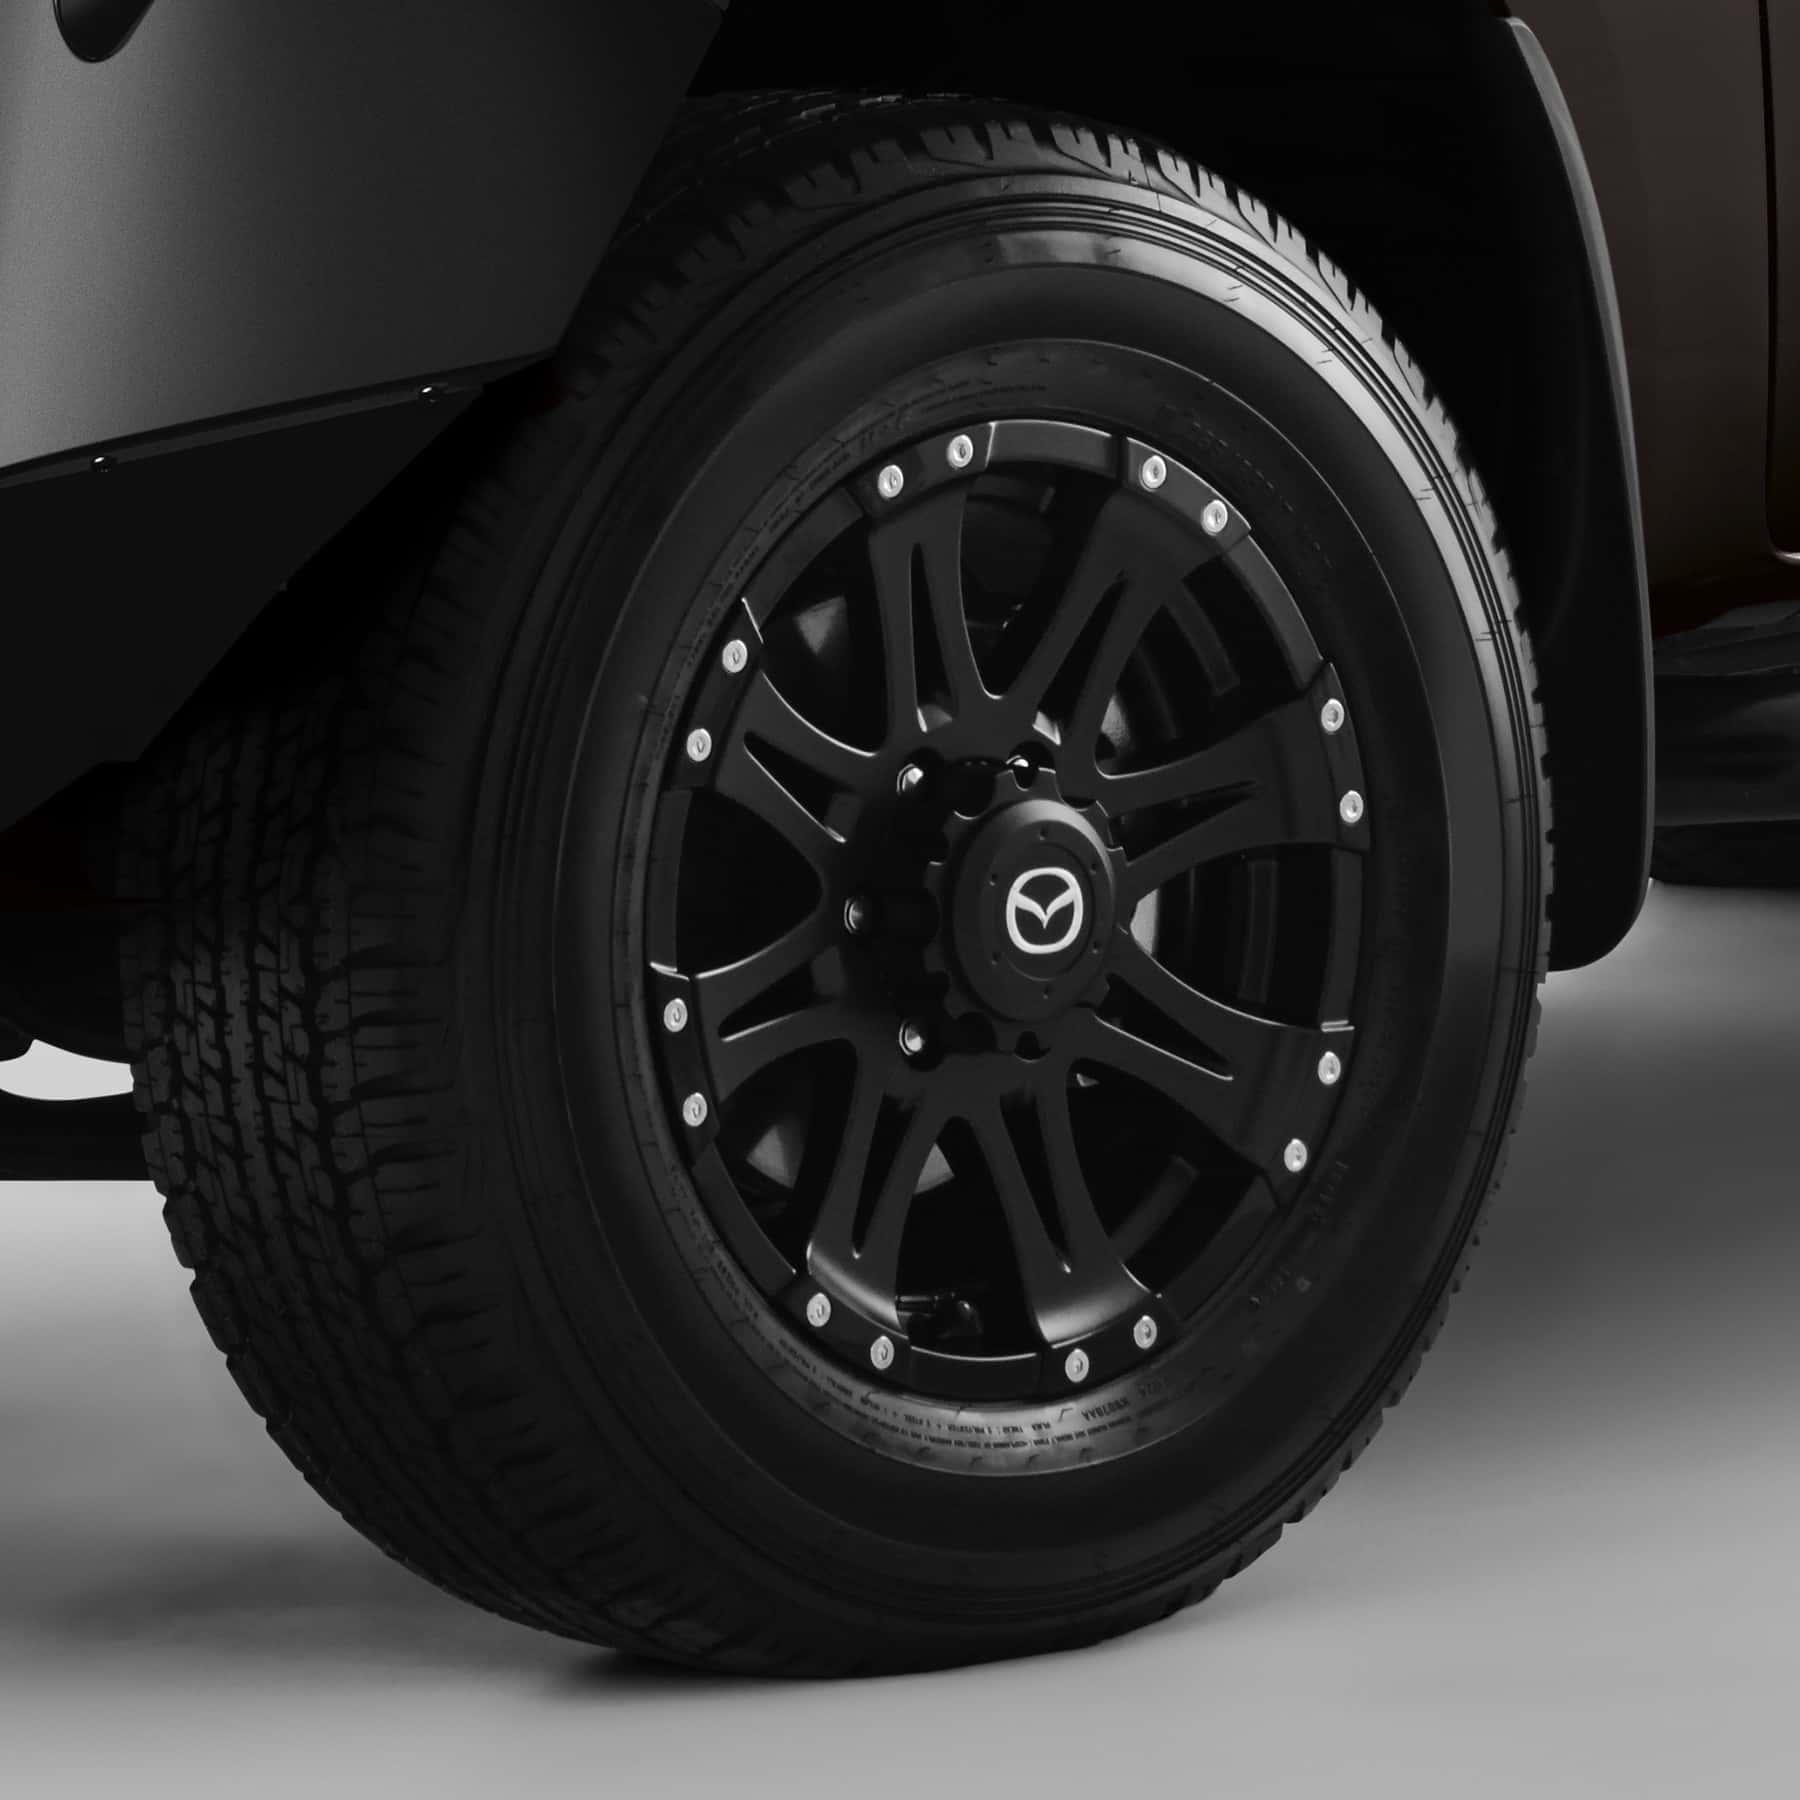 17-Inch 8-Spoke Alloy Wheels